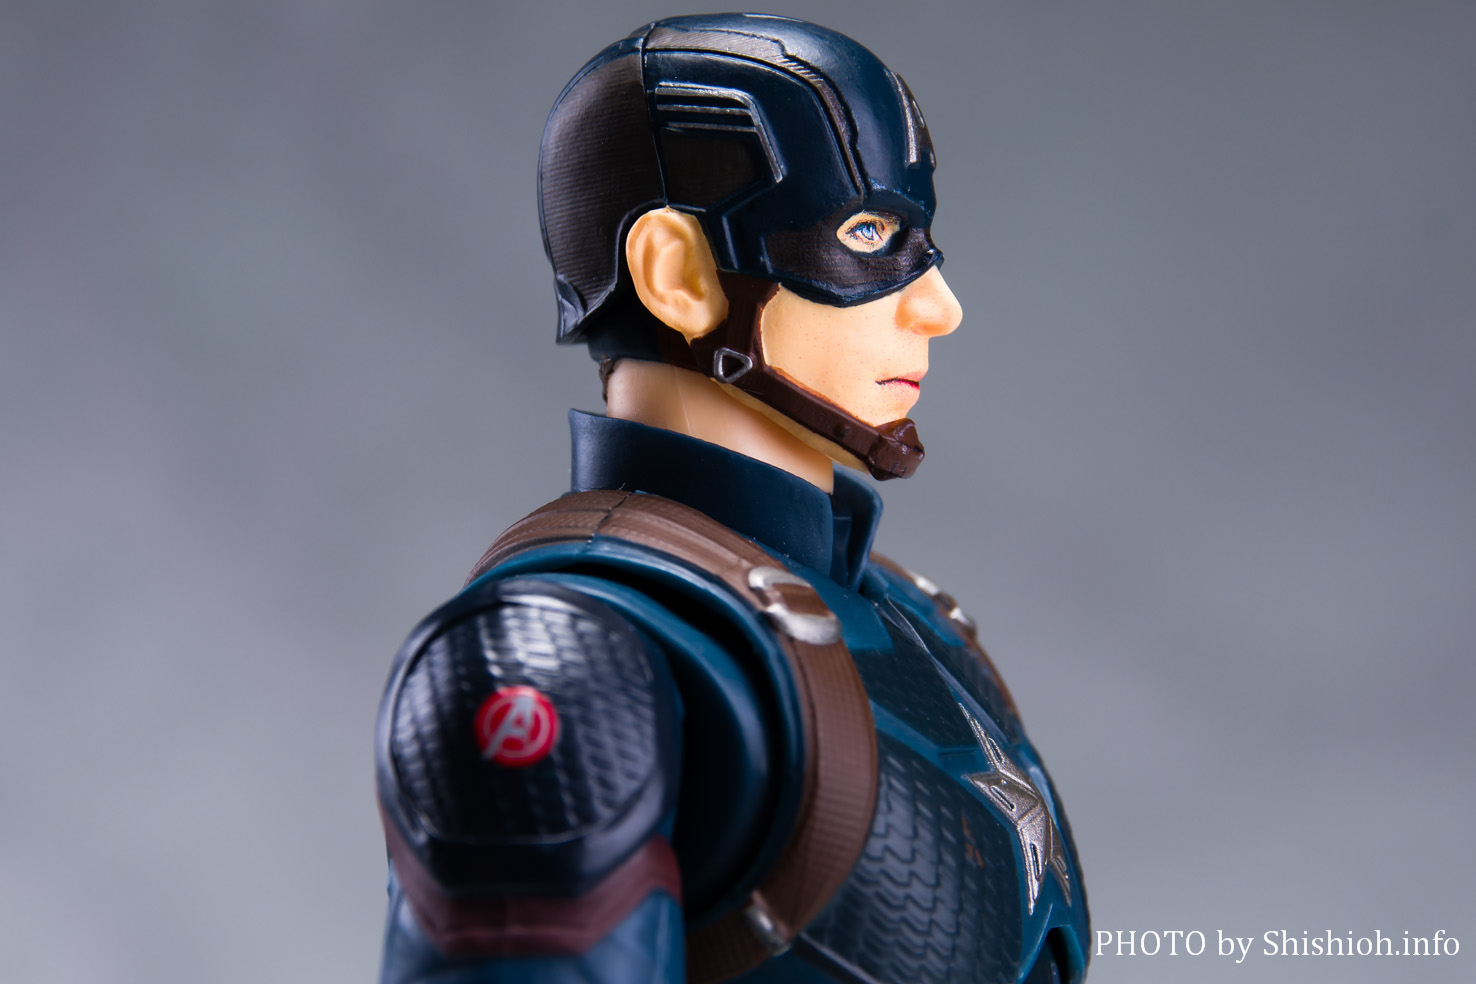 S.H.Figuarts キャプテン・アメリカ(アベンジャーズ/エンドゲーム)